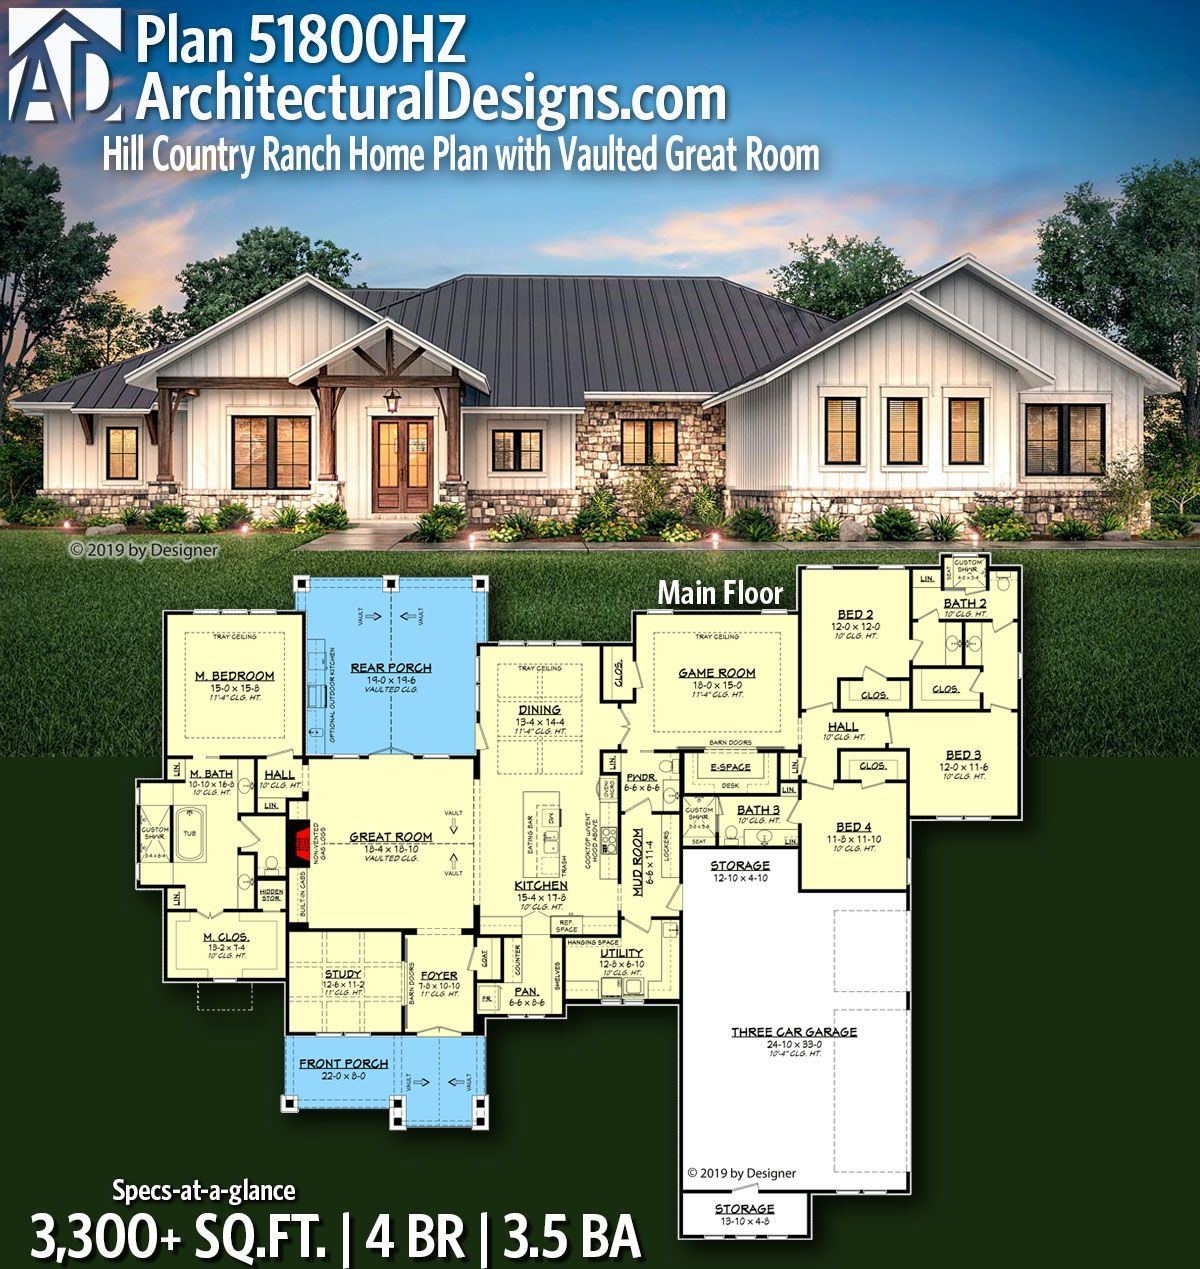 Plan 51800hz Hill Country Ranch Home Plan With Vaulted Great Room